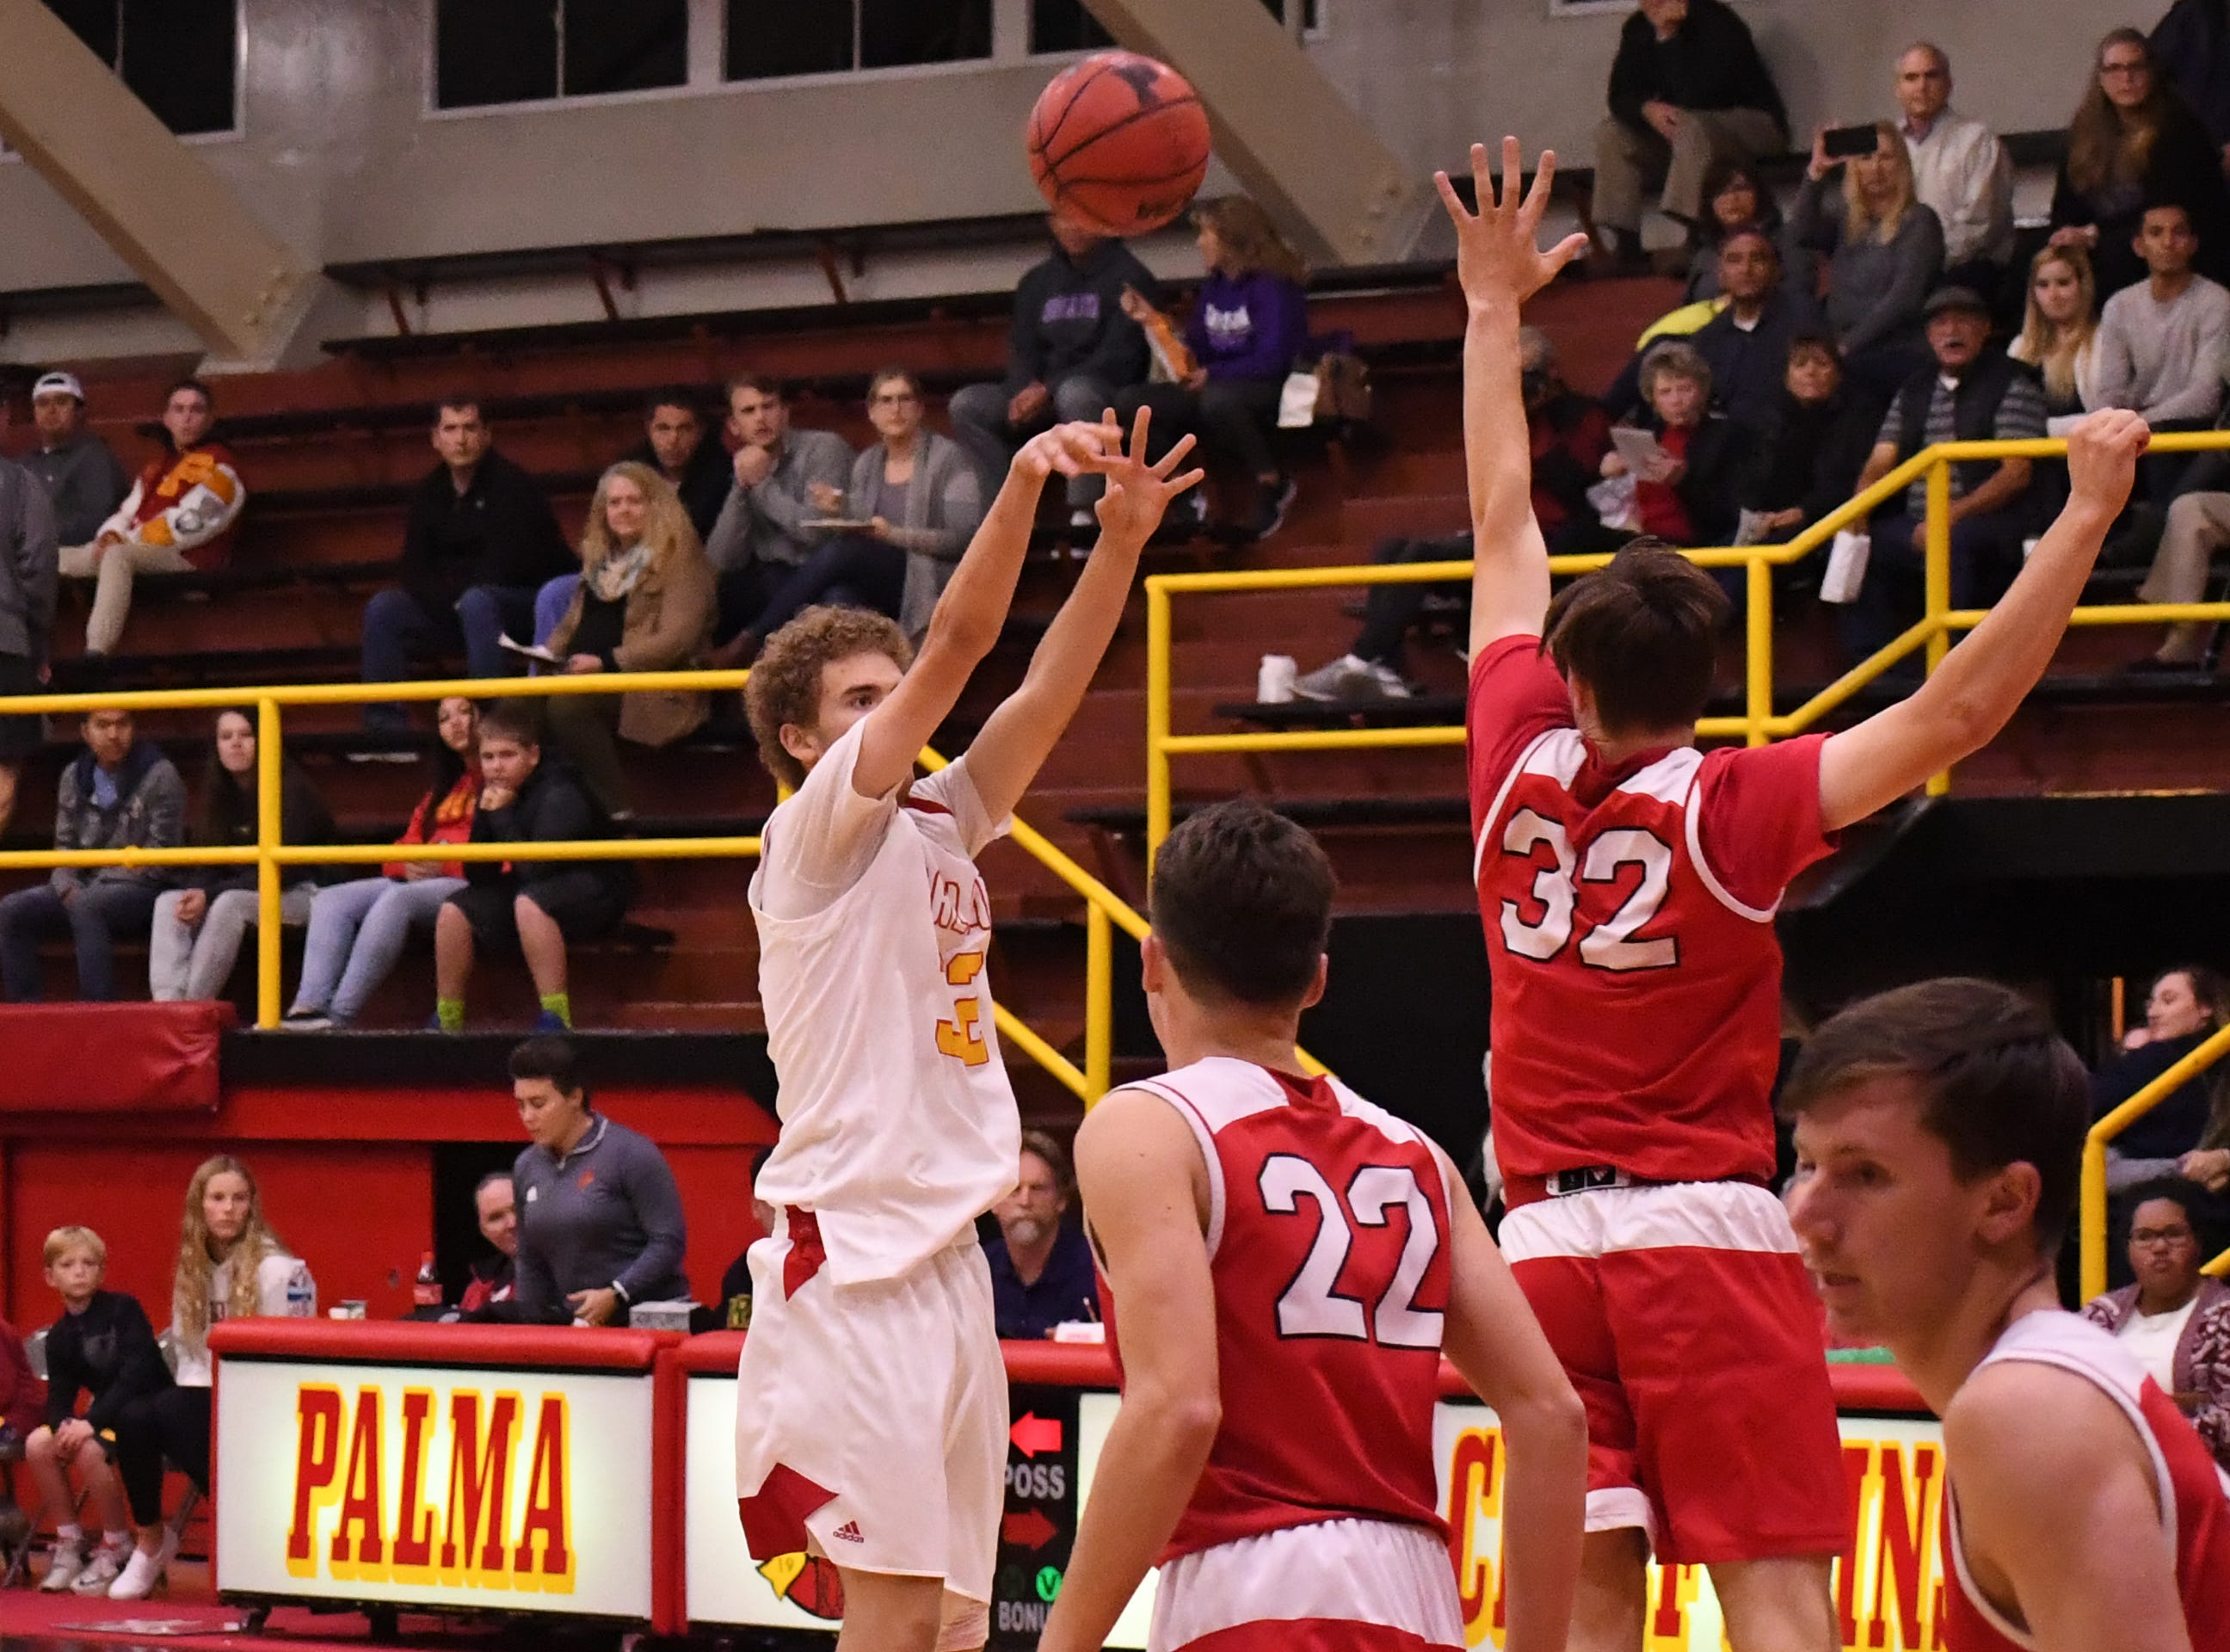 Palma forward Clin Neff (32) launches a 3-pointer in the first quarter against San Benito.